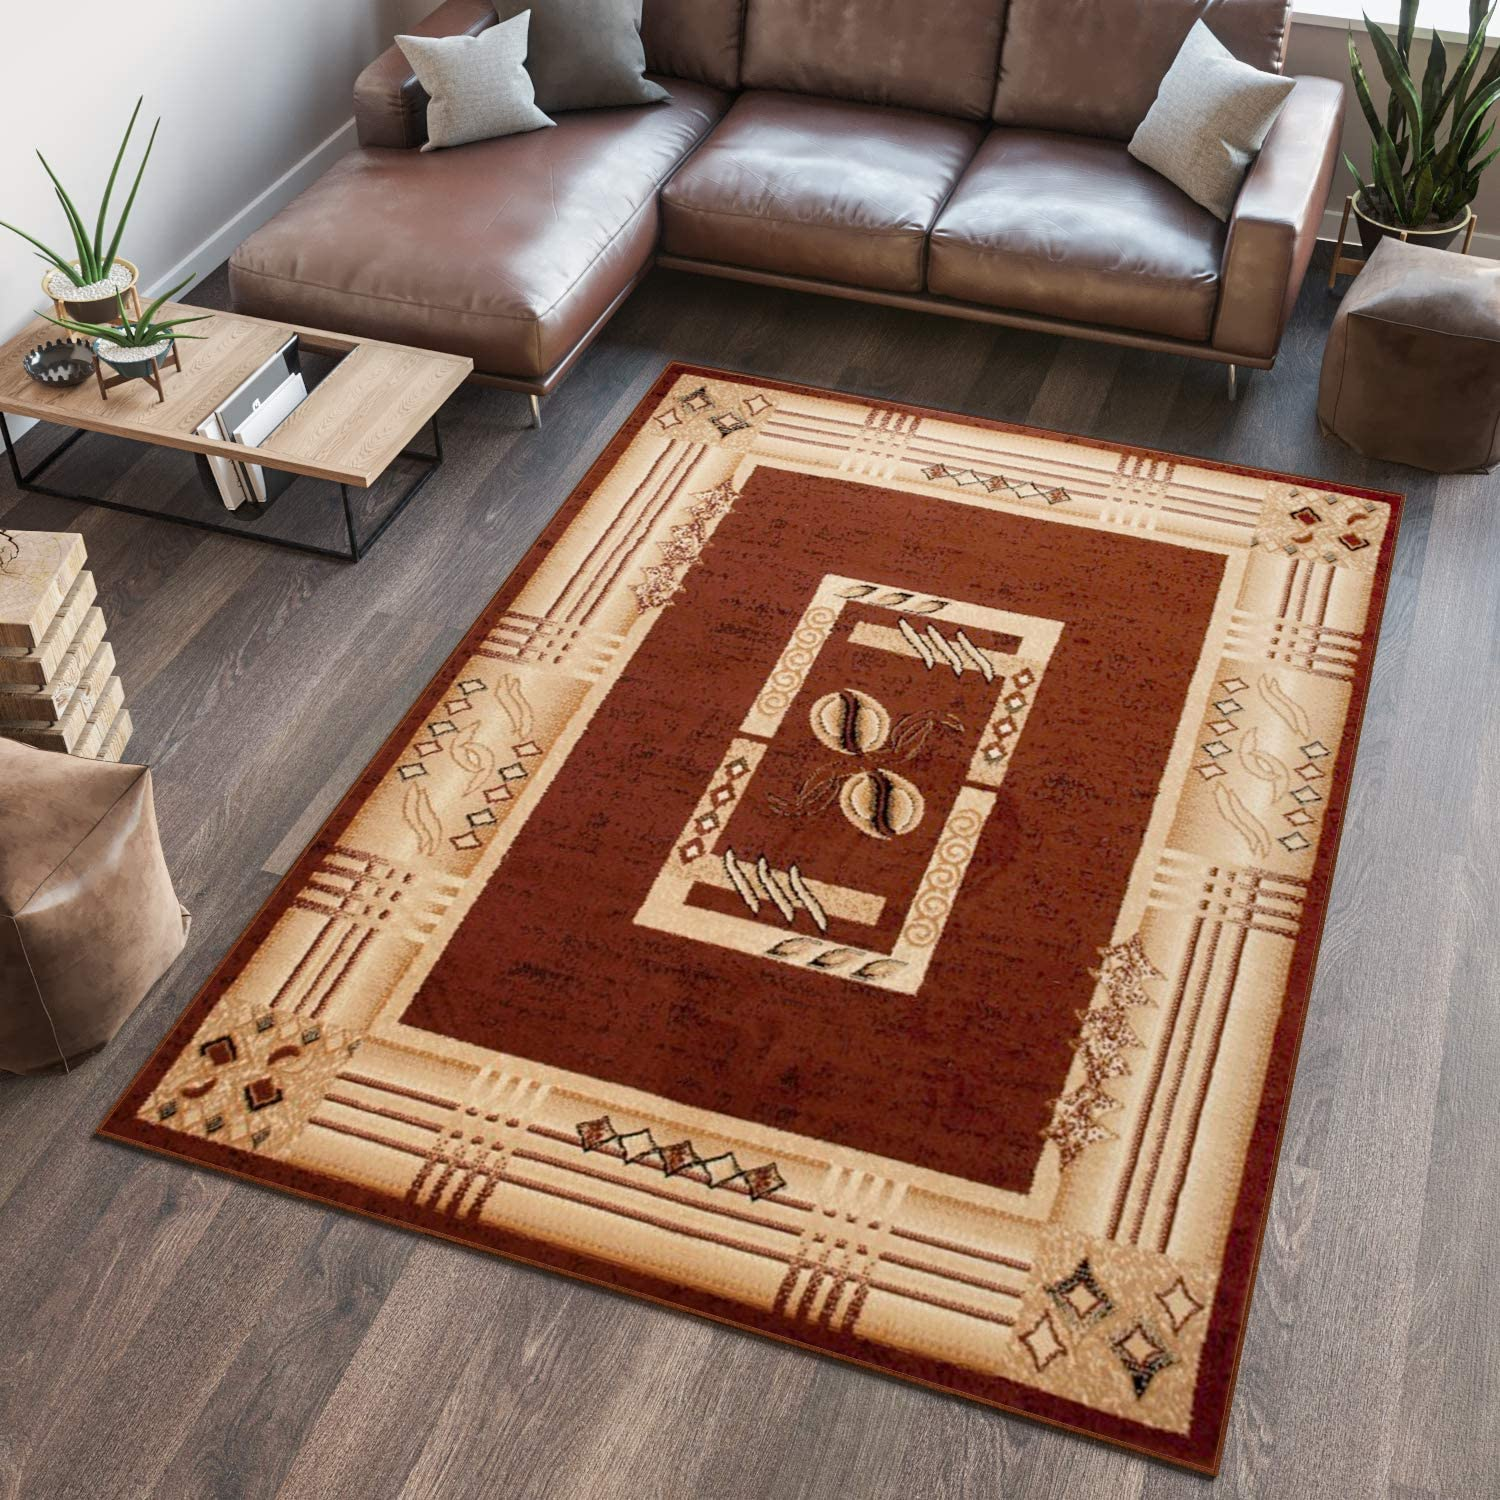 140 x 200 cm Tapiso Area Rugs Living Room Bedroom Red Beige Traditional Frame Pattern Durable Carpet Atlas Collection Size 4ft7 x 6ft7